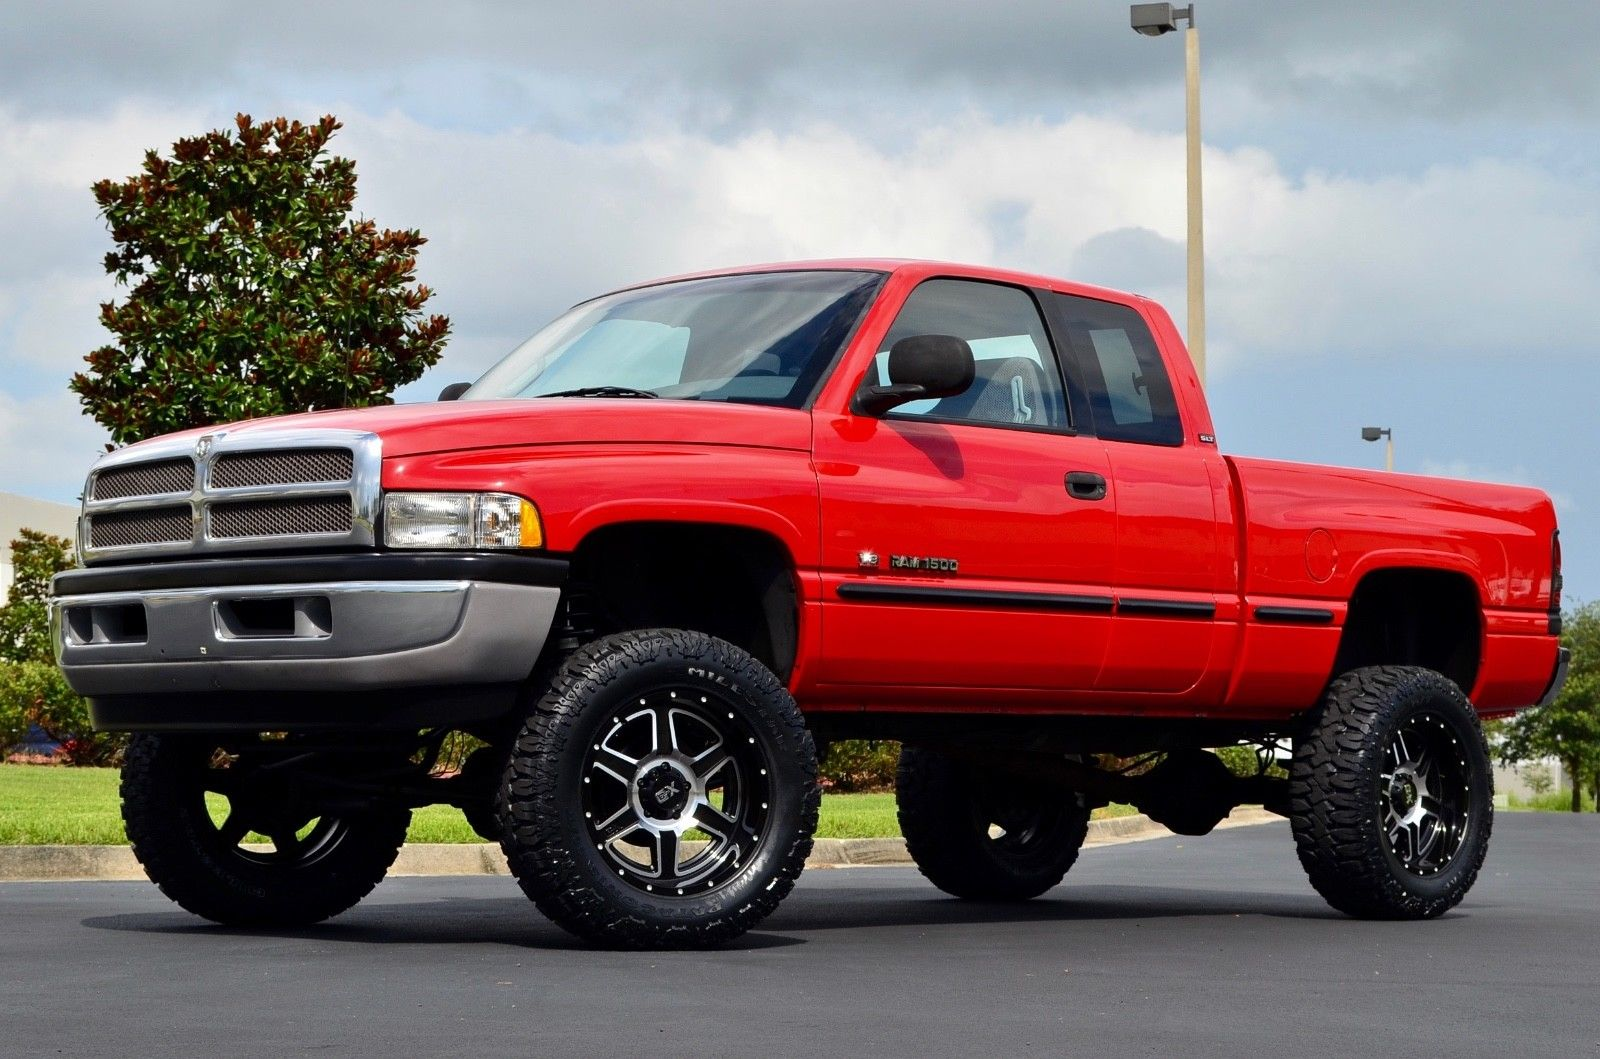 top shape 1998 dodge ram 1500 laramie slt 4wd lifted for sale. Black Bedroom Furniture Sets. Home Design Ideas